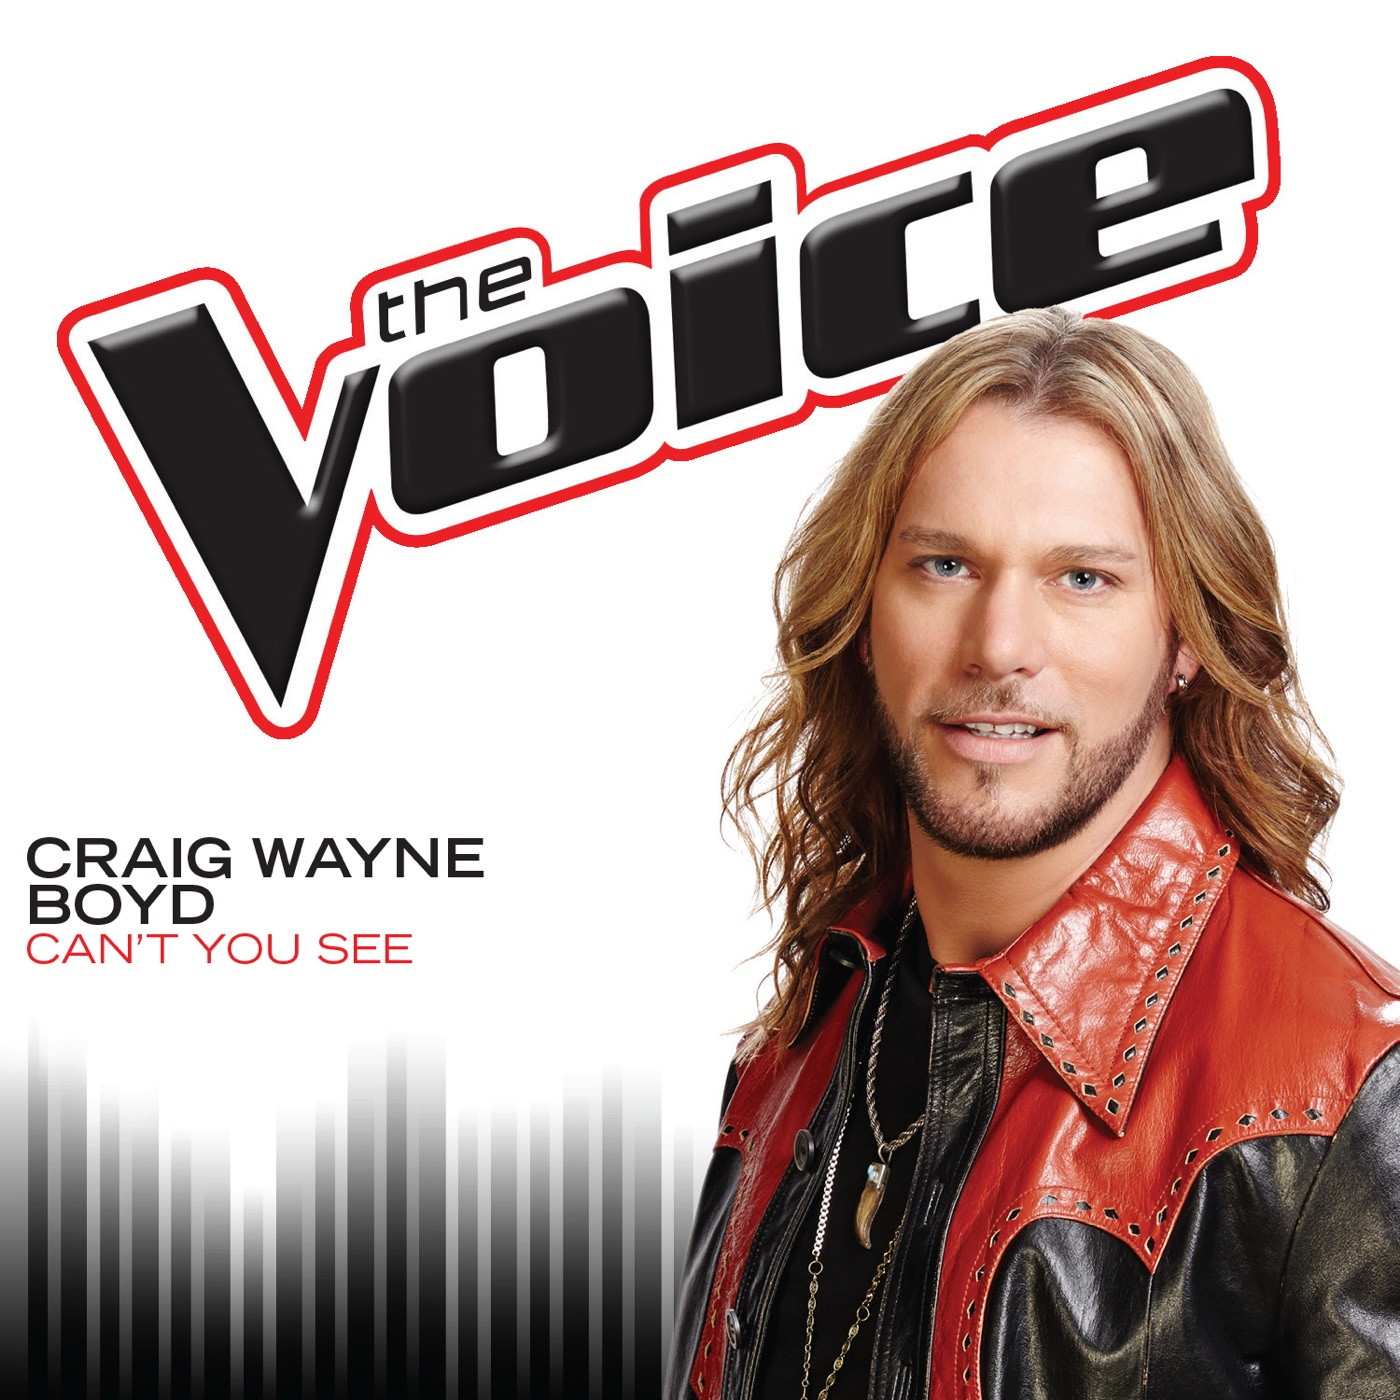 Craig Wayne Boyd - Can't You See (The Voice Performance) - Single